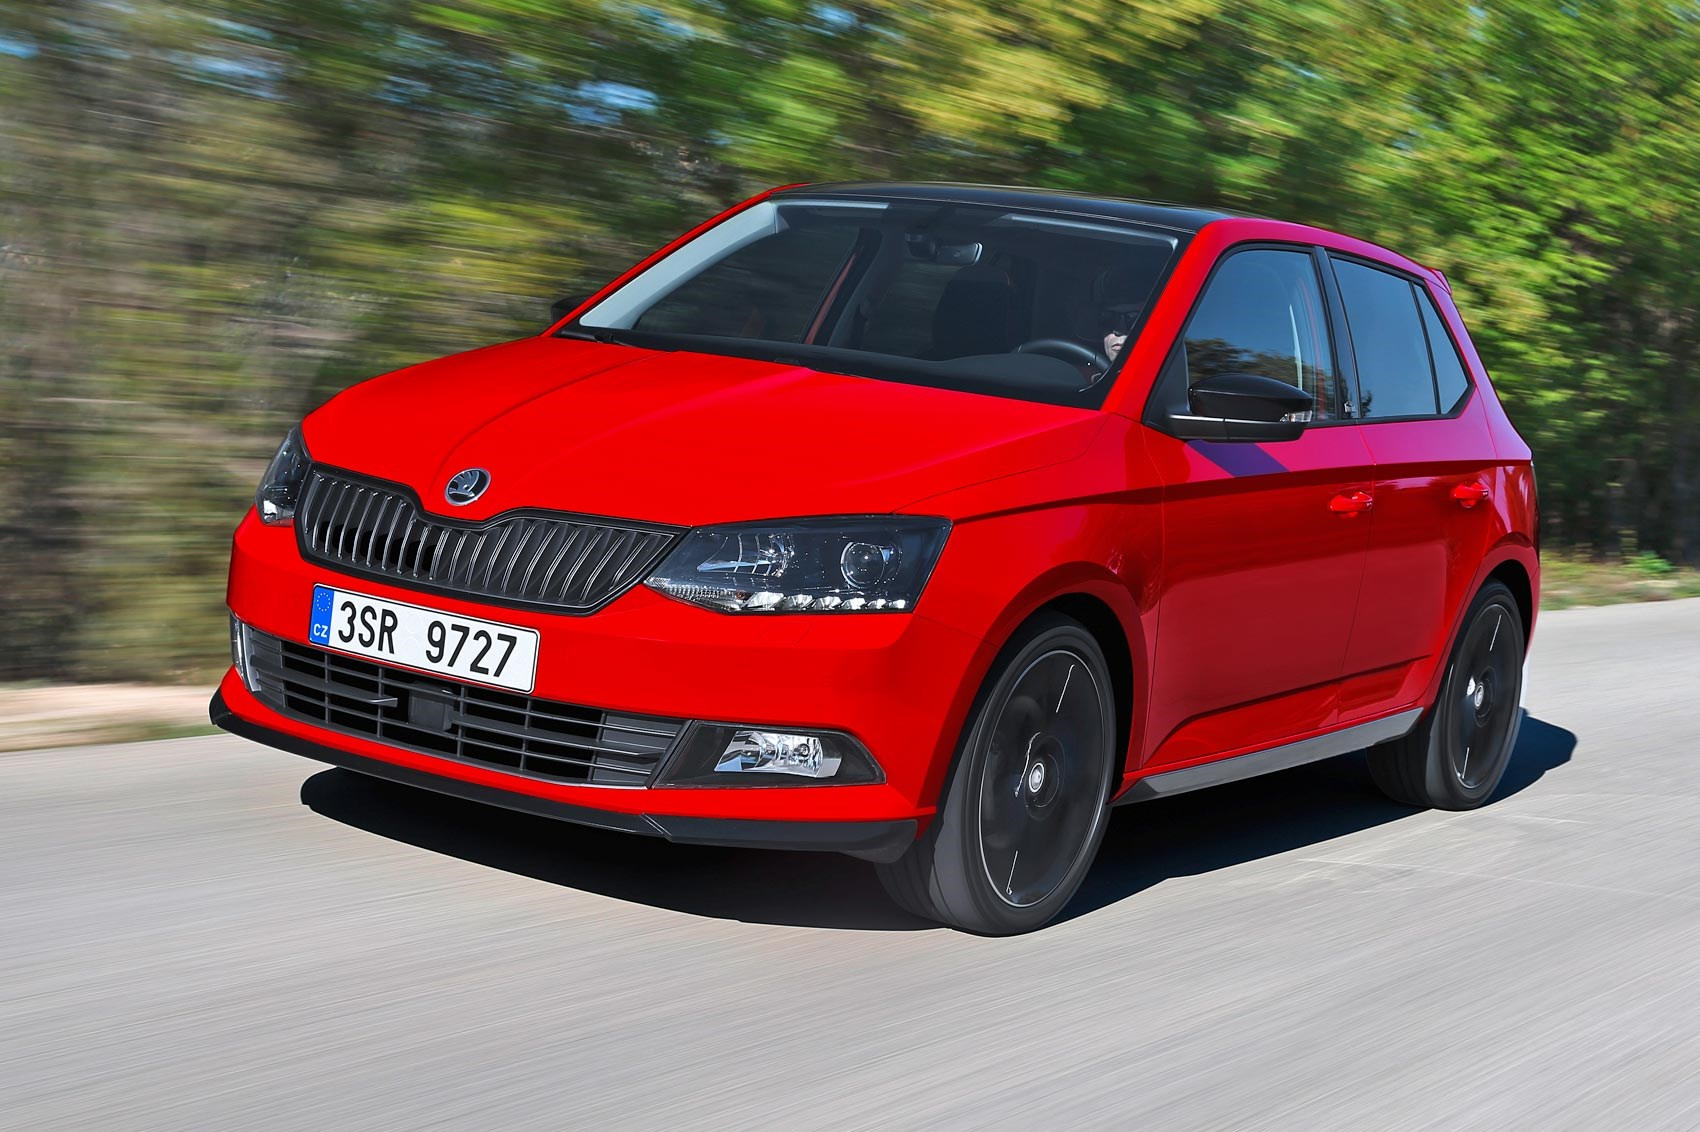 skoda fabia 1 2 tsi 90ps monte carlo 2016 review by car magazine. Black Bedroom Furniture Sets. Home Design Ideas